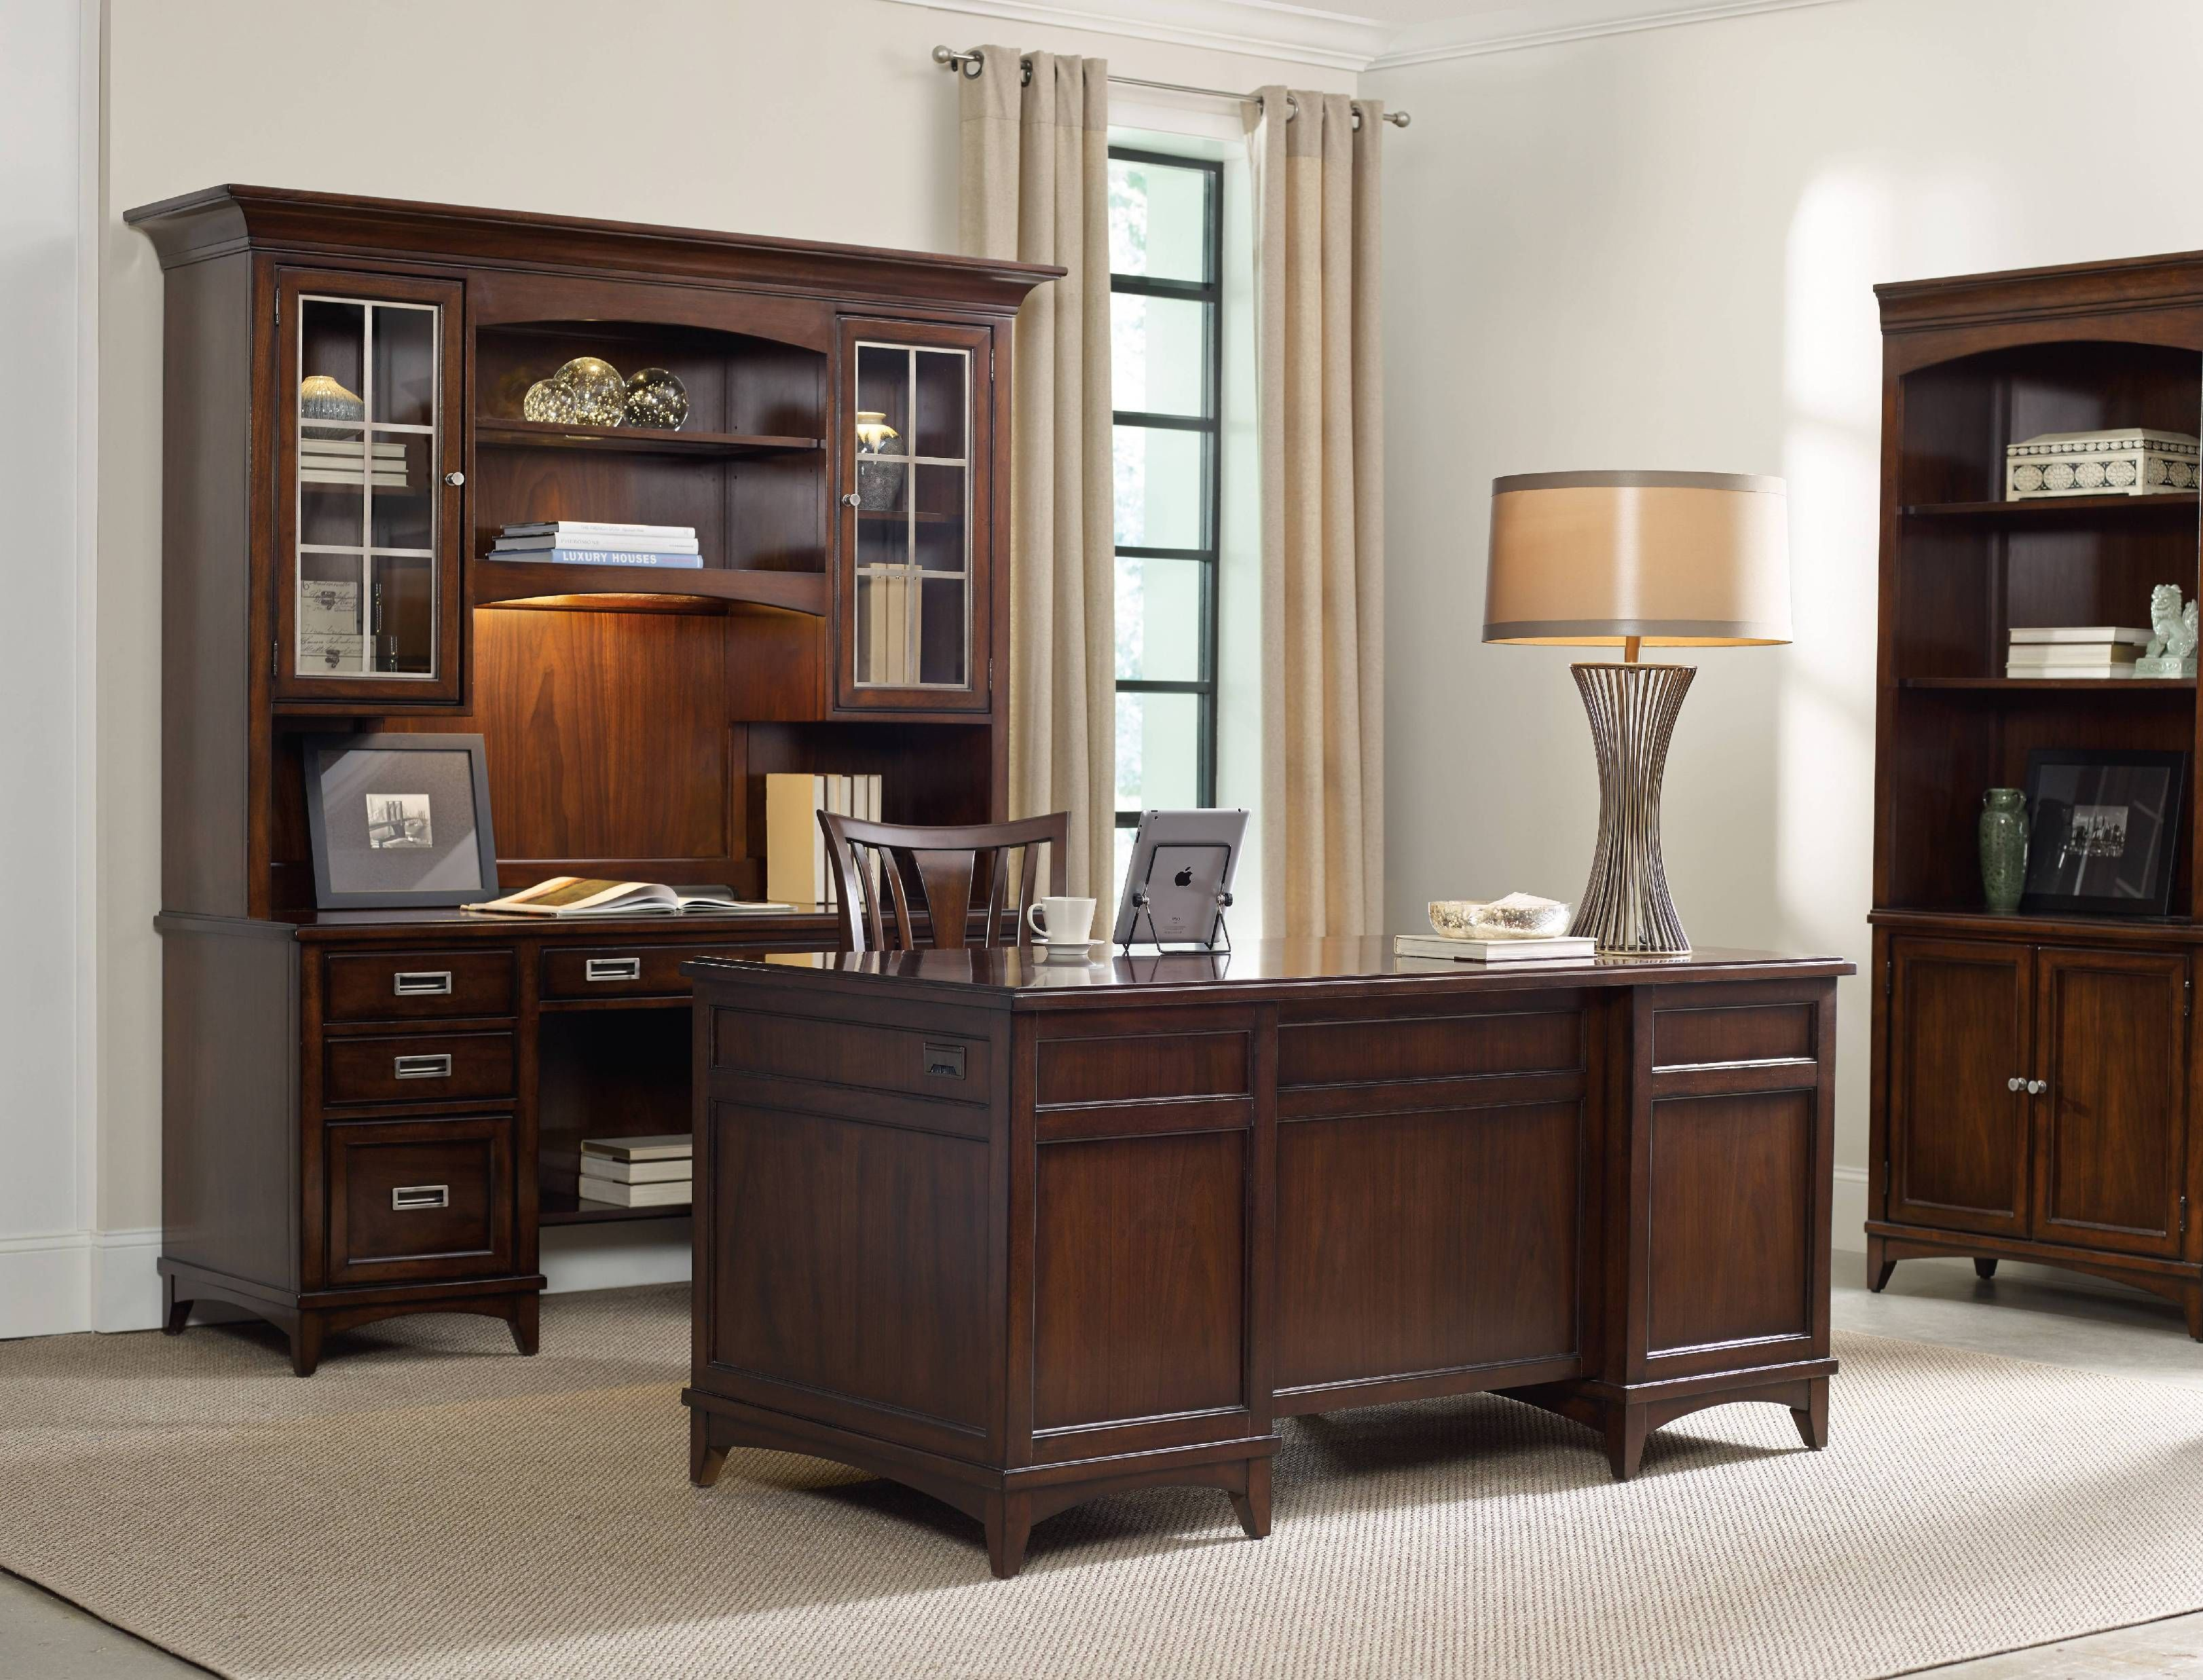 Hooker Furniture Home Office Endearing Hooker Furniture Home Office Latitude Executive Desk 516710562 . Inspiration